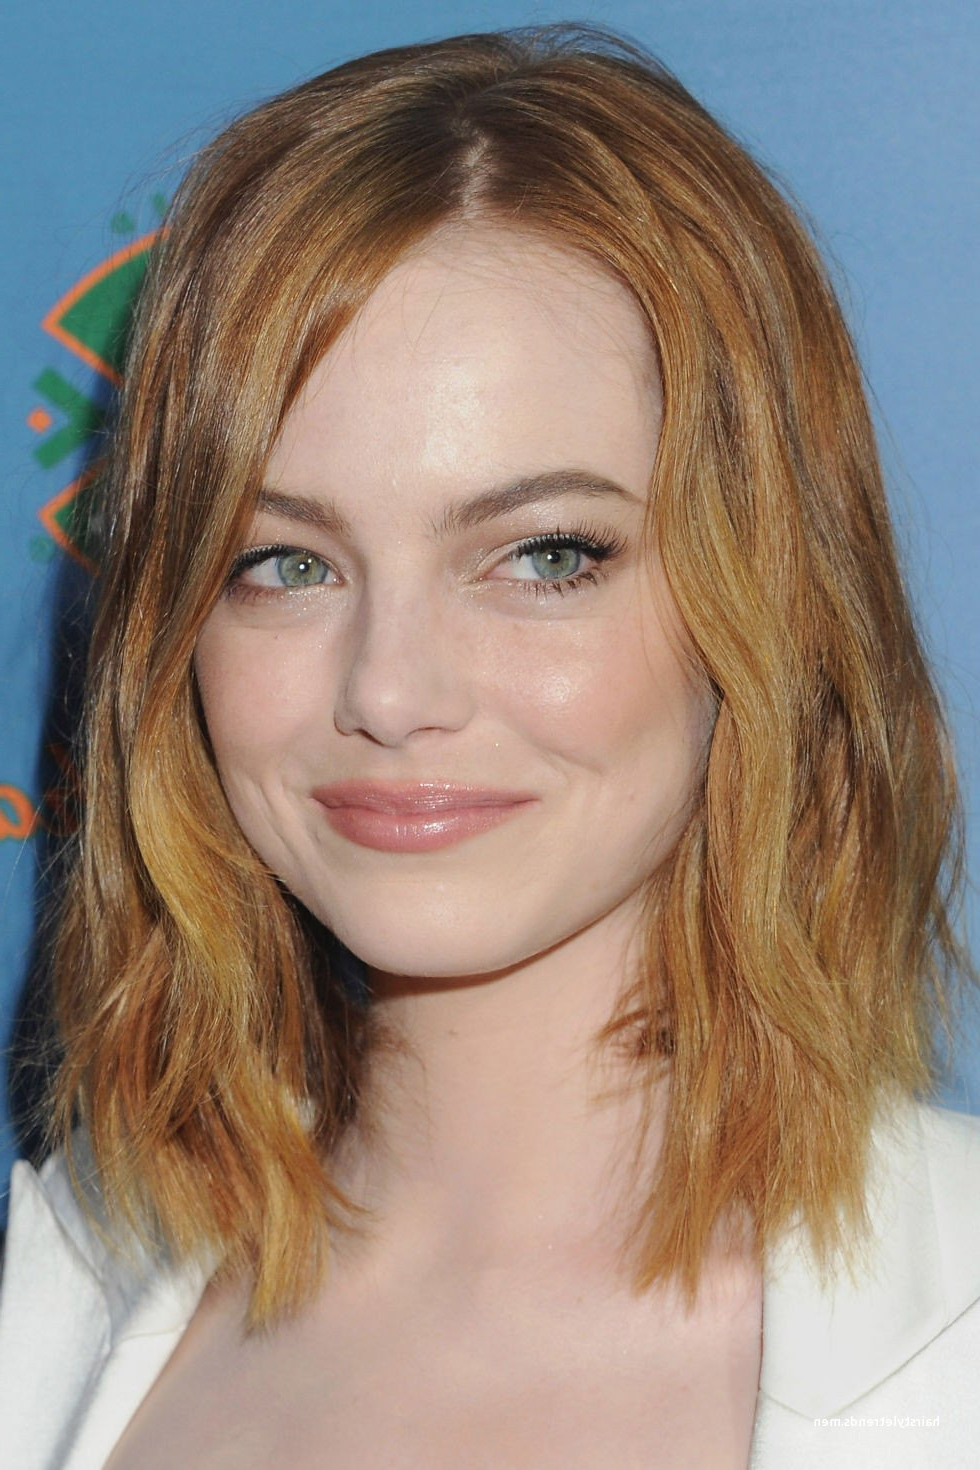 Find Out Full Gallery Of New Easy Care Hairstyles For Fine Hair In Easy Care Short Hairstyles For Fine Hair (View 18 of 25)